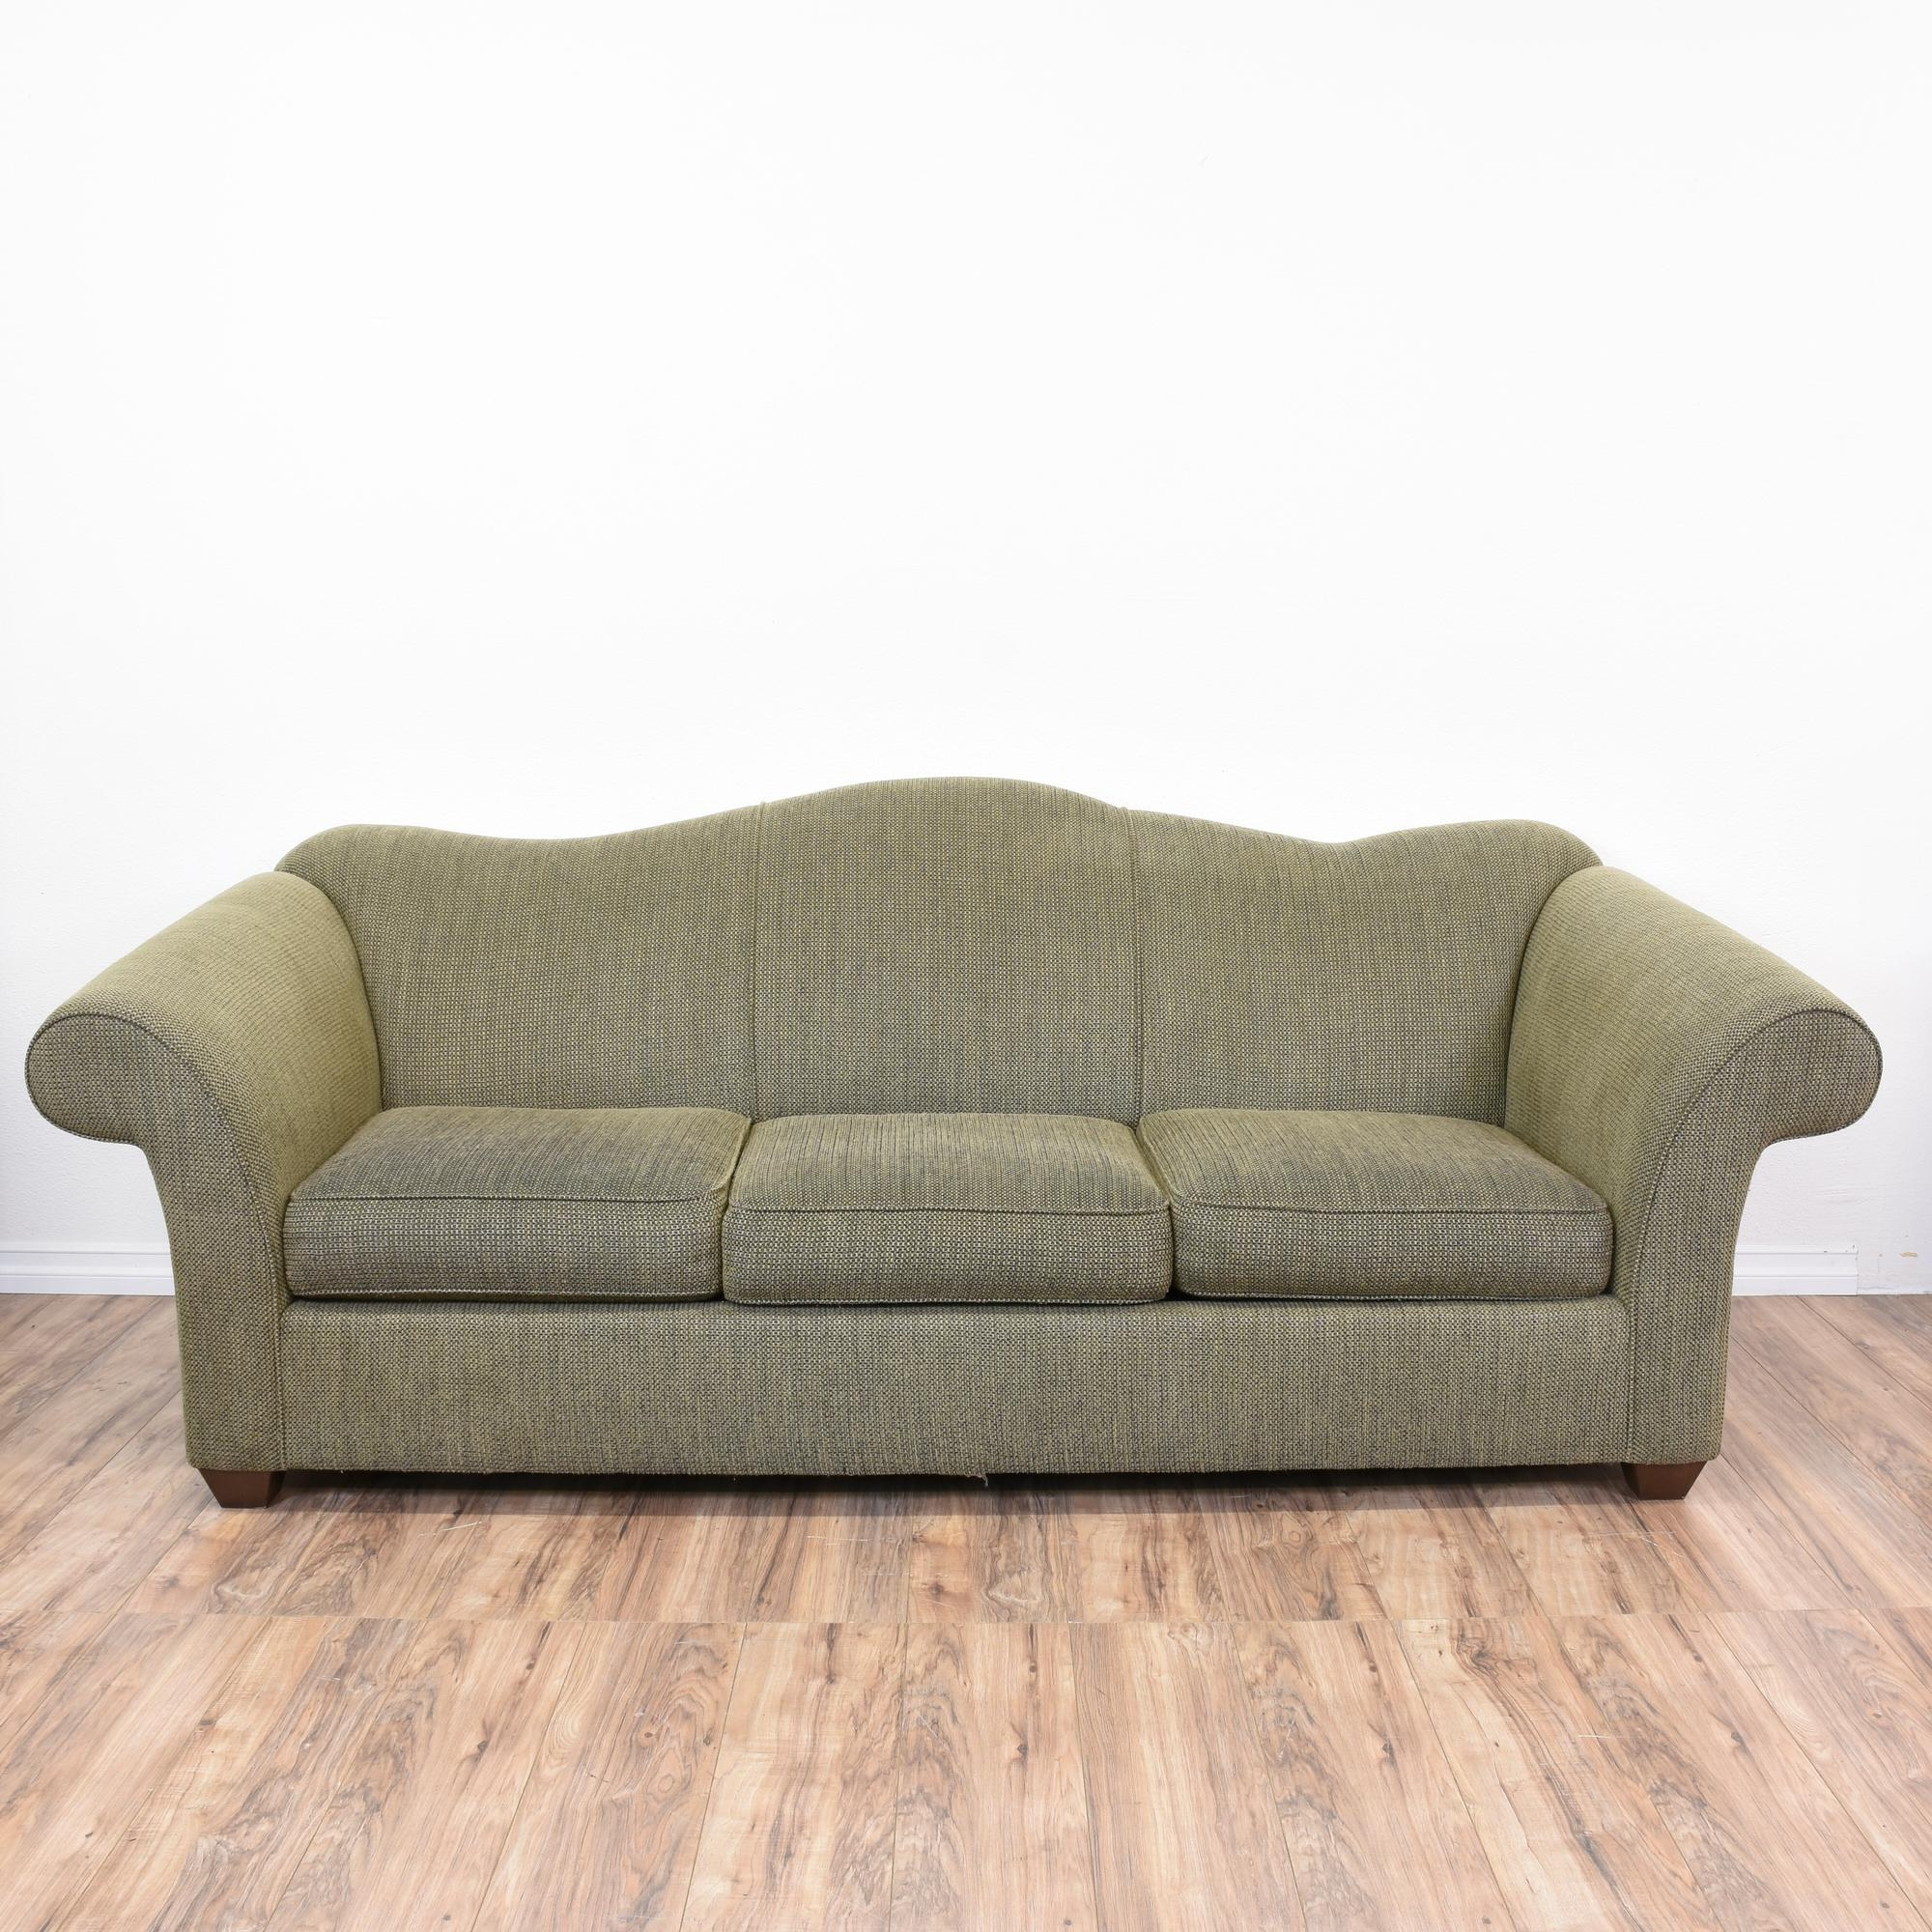 Featured Image of Bauhaus Sleeper Sofa